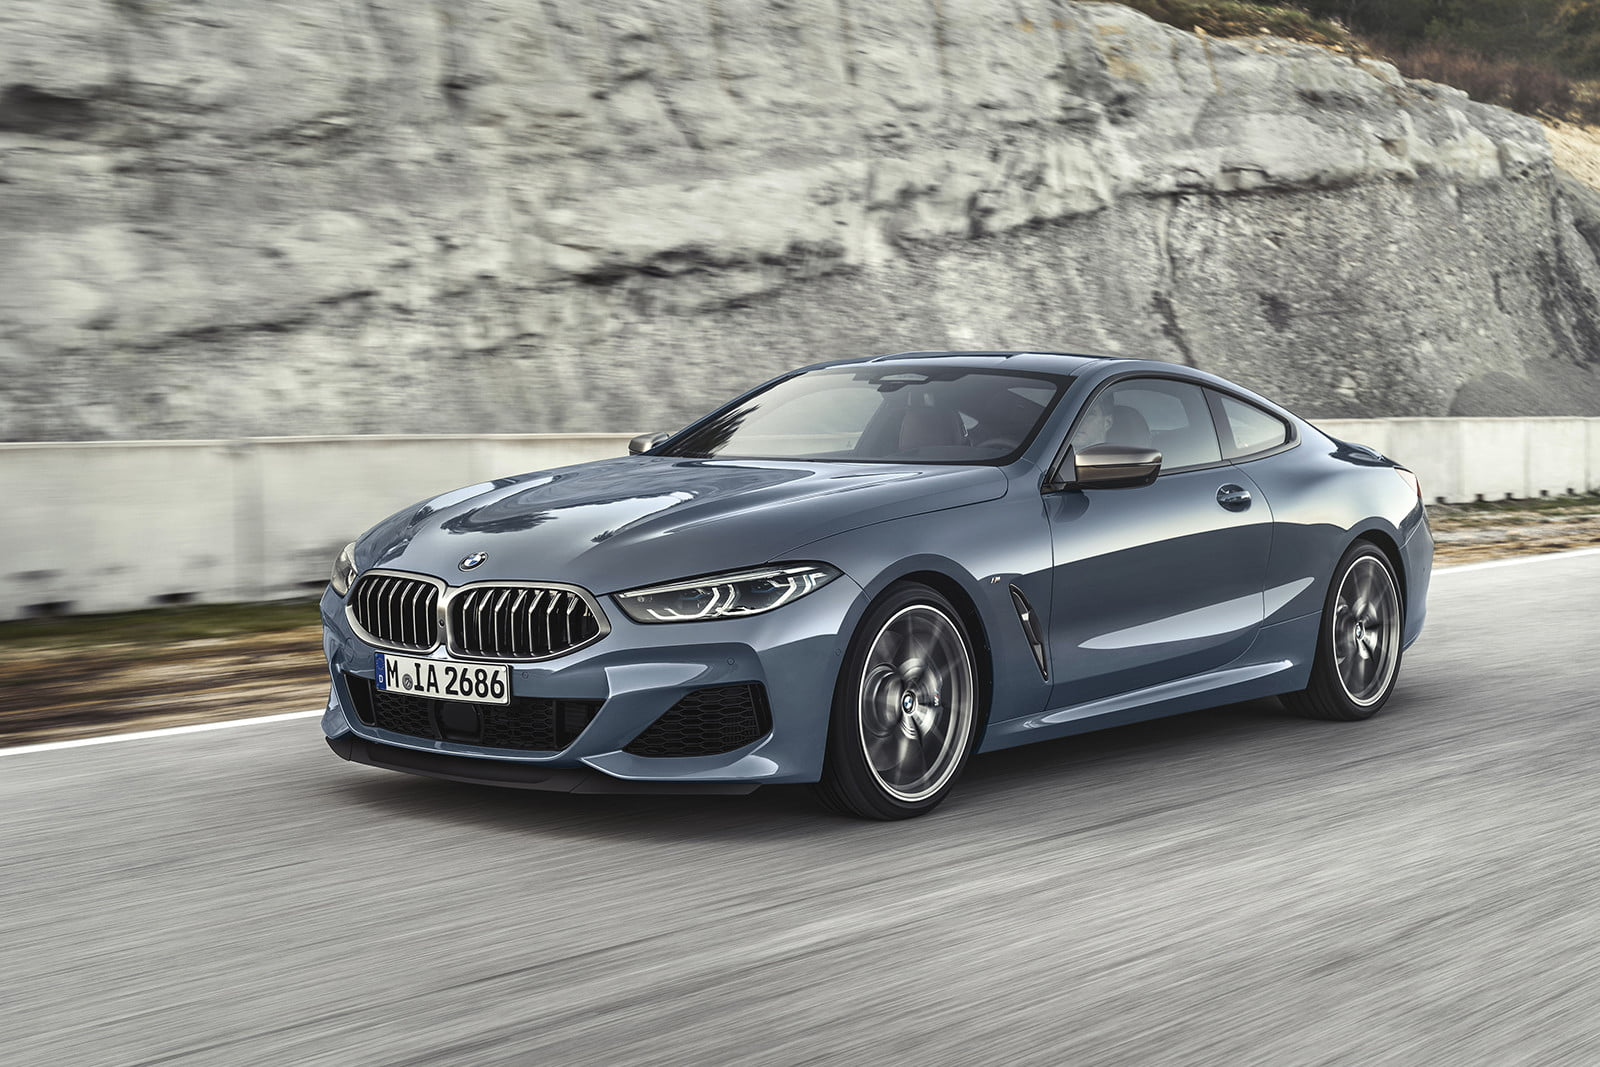 The 2019 Bmw M850i Xdrive Requires 112 895 To End Up In